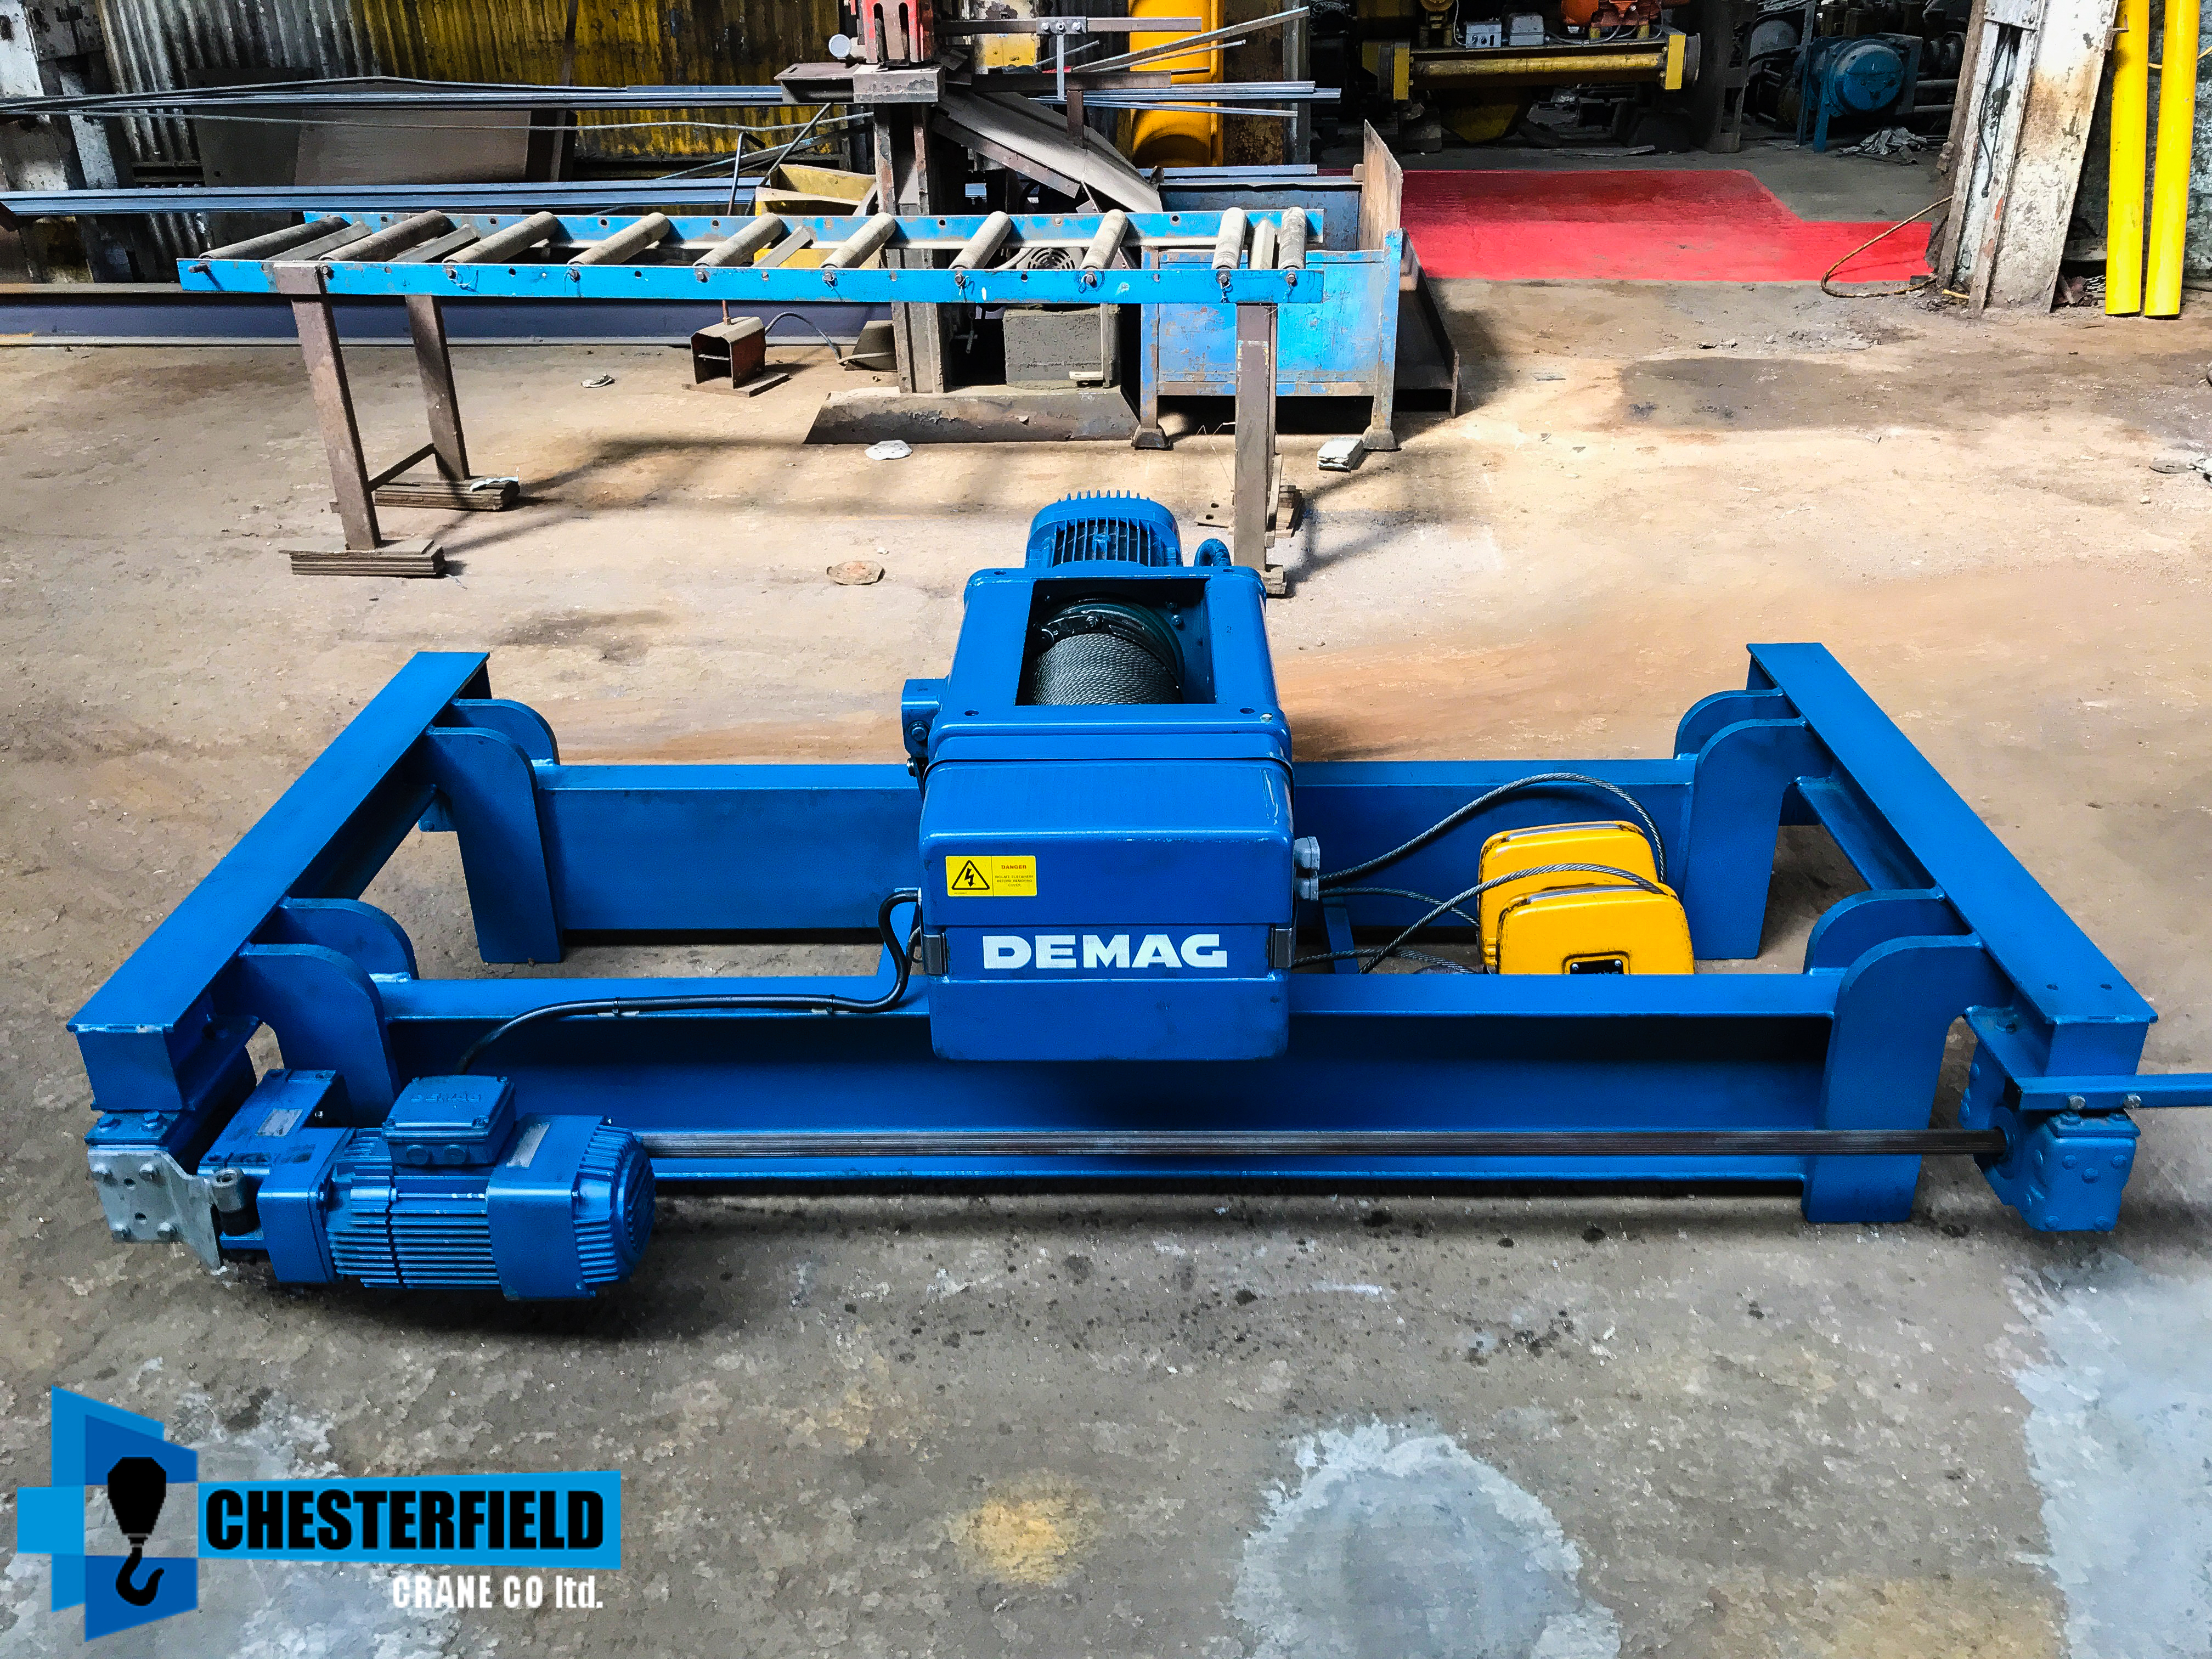 Wire Rope Hoist, Electric Mobile Hoist For Sale Uk | ChesterfieldCrane